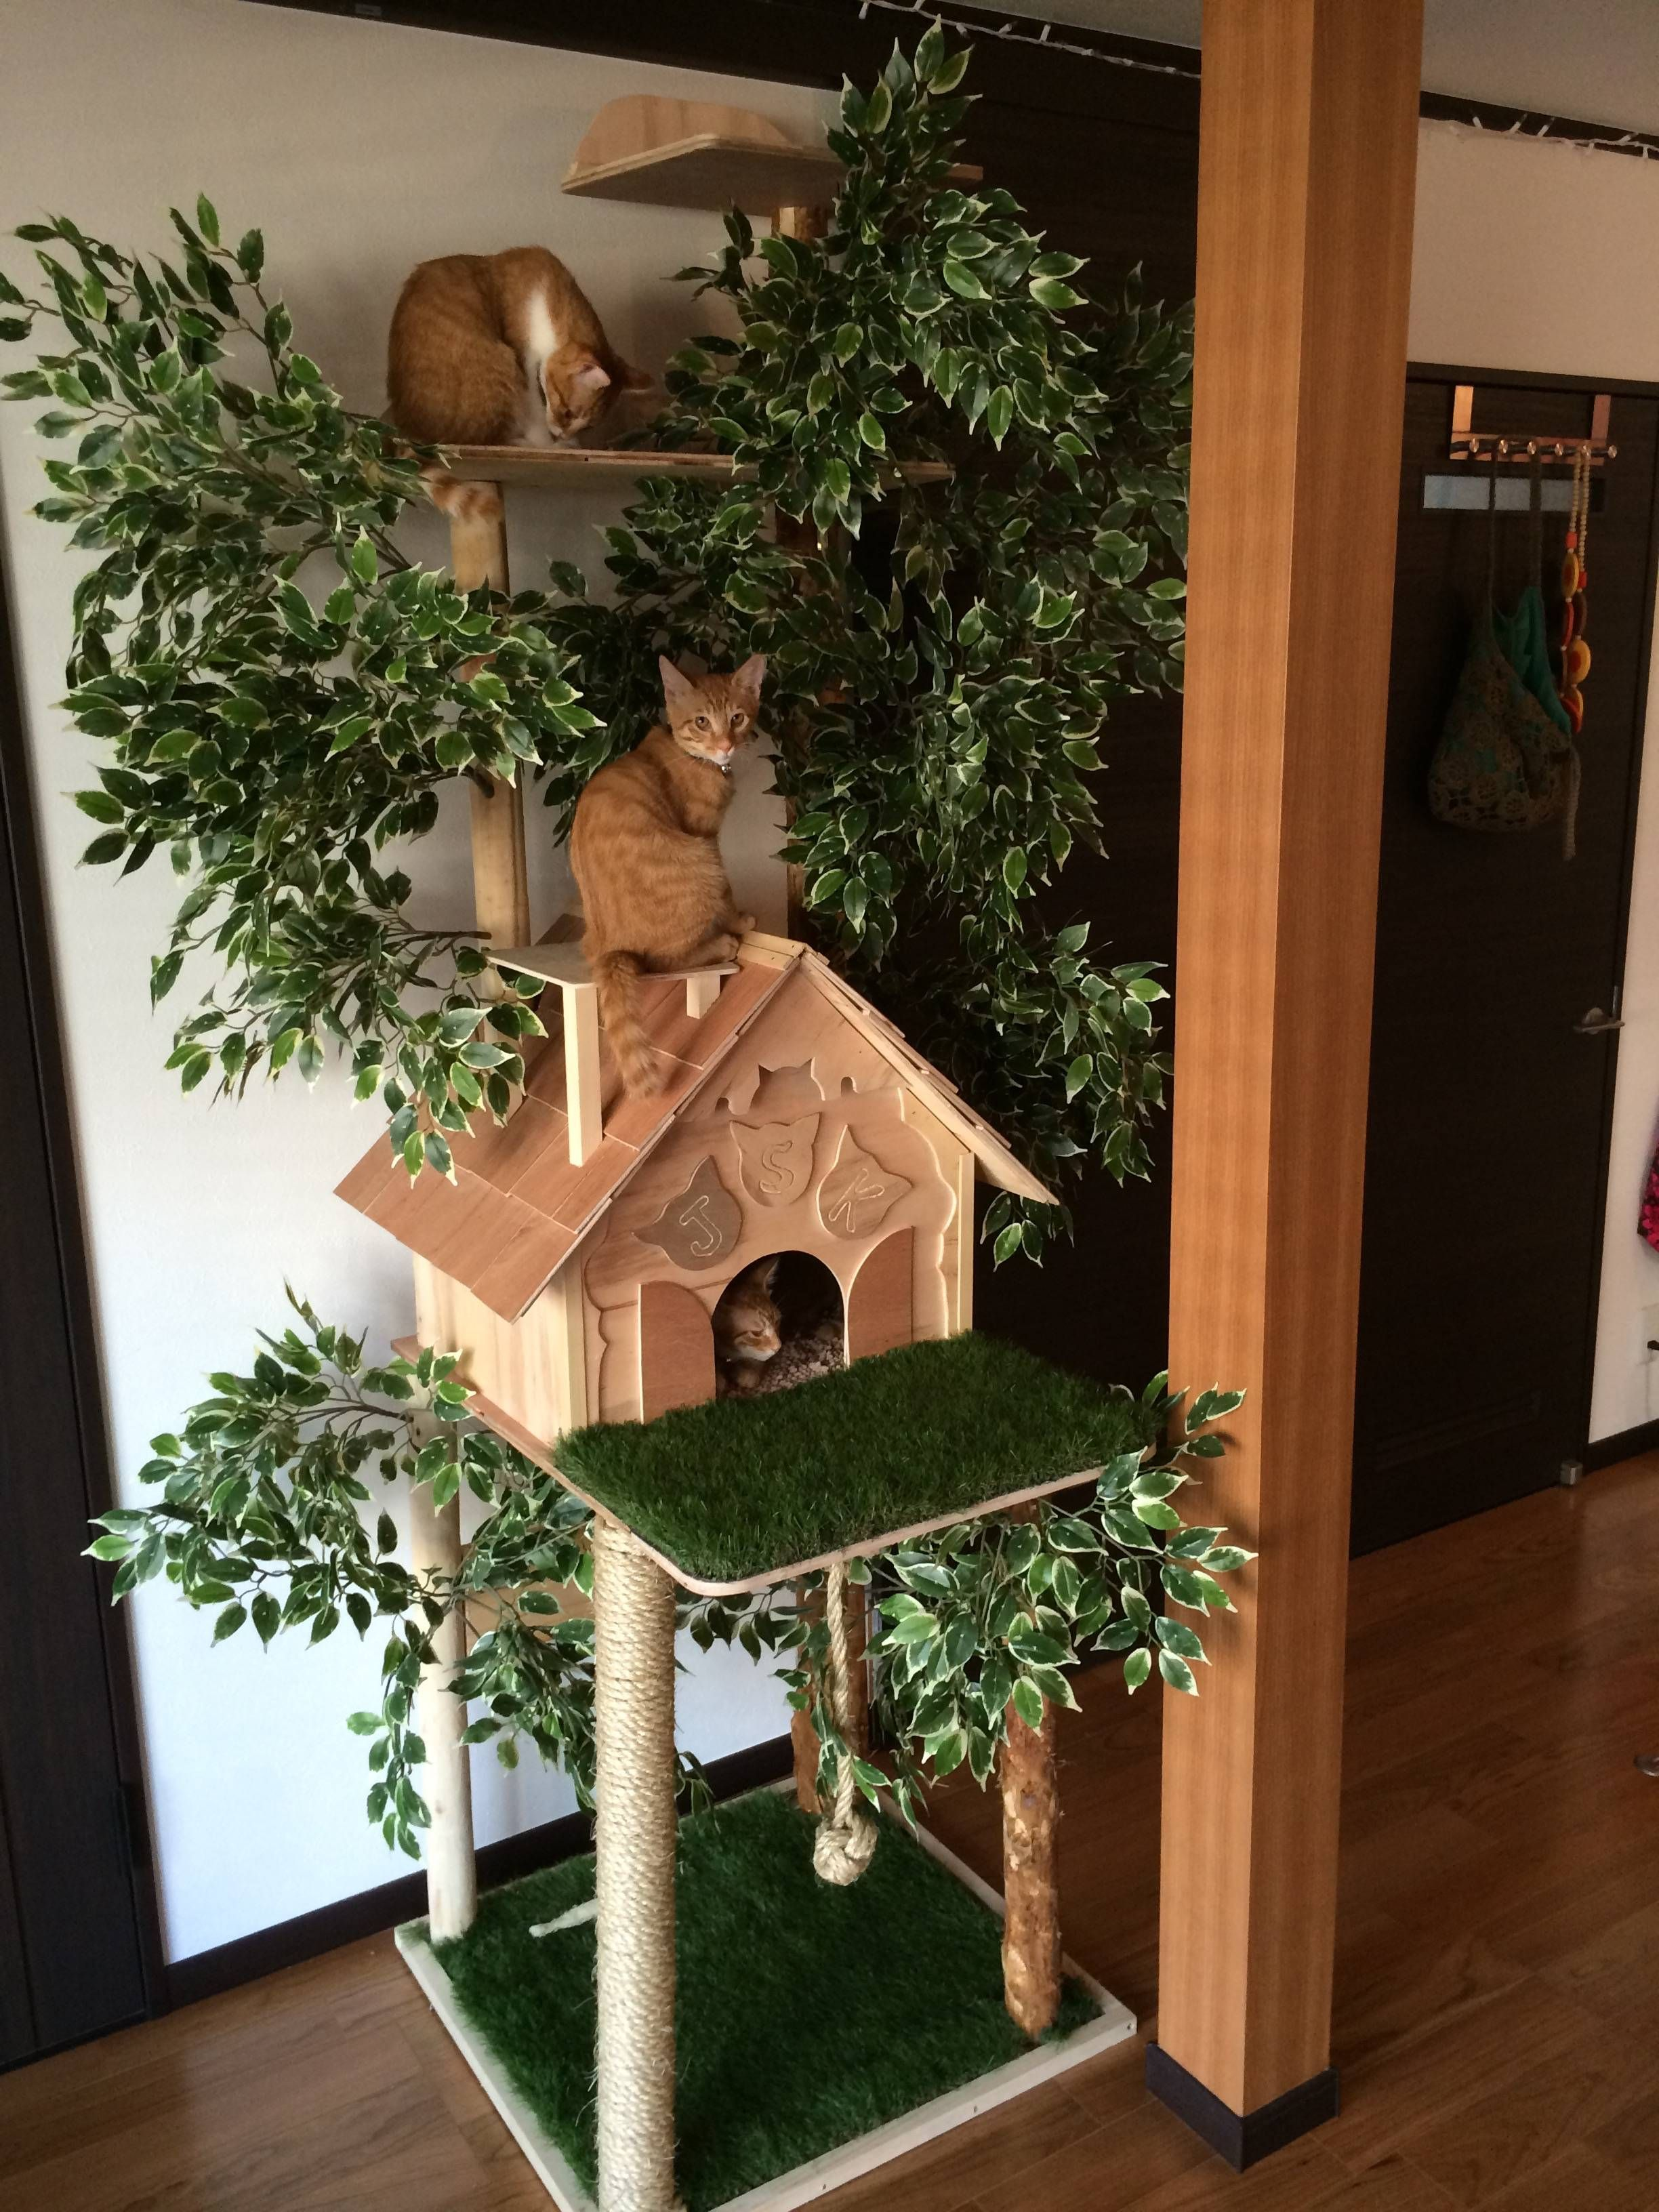 making a natural looking cat tree home decor cats diy cat tree rh pinterest com